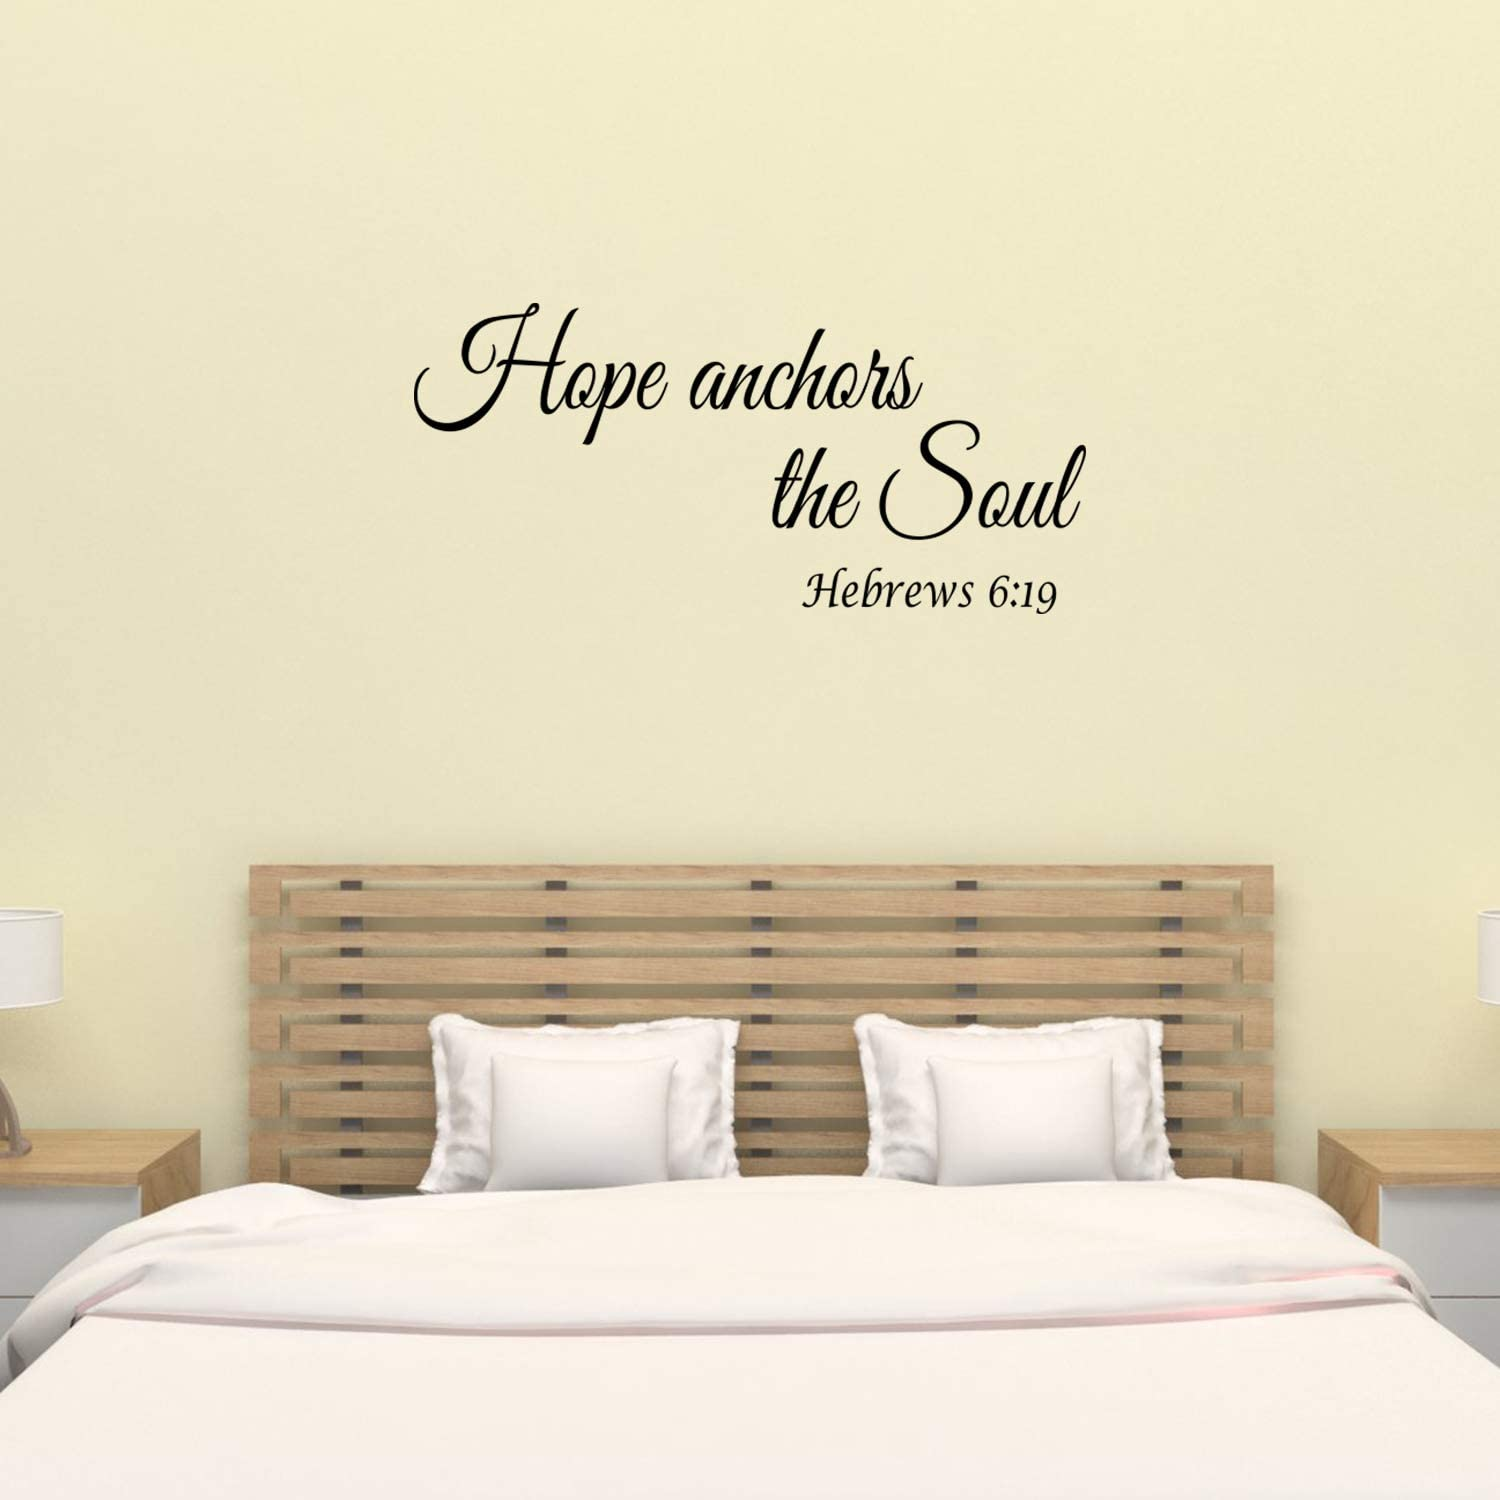 Wall Decal Quote Hebrews 6:19 Hope Anchors The Soul Bible Verse Wall Decal Decor Sign